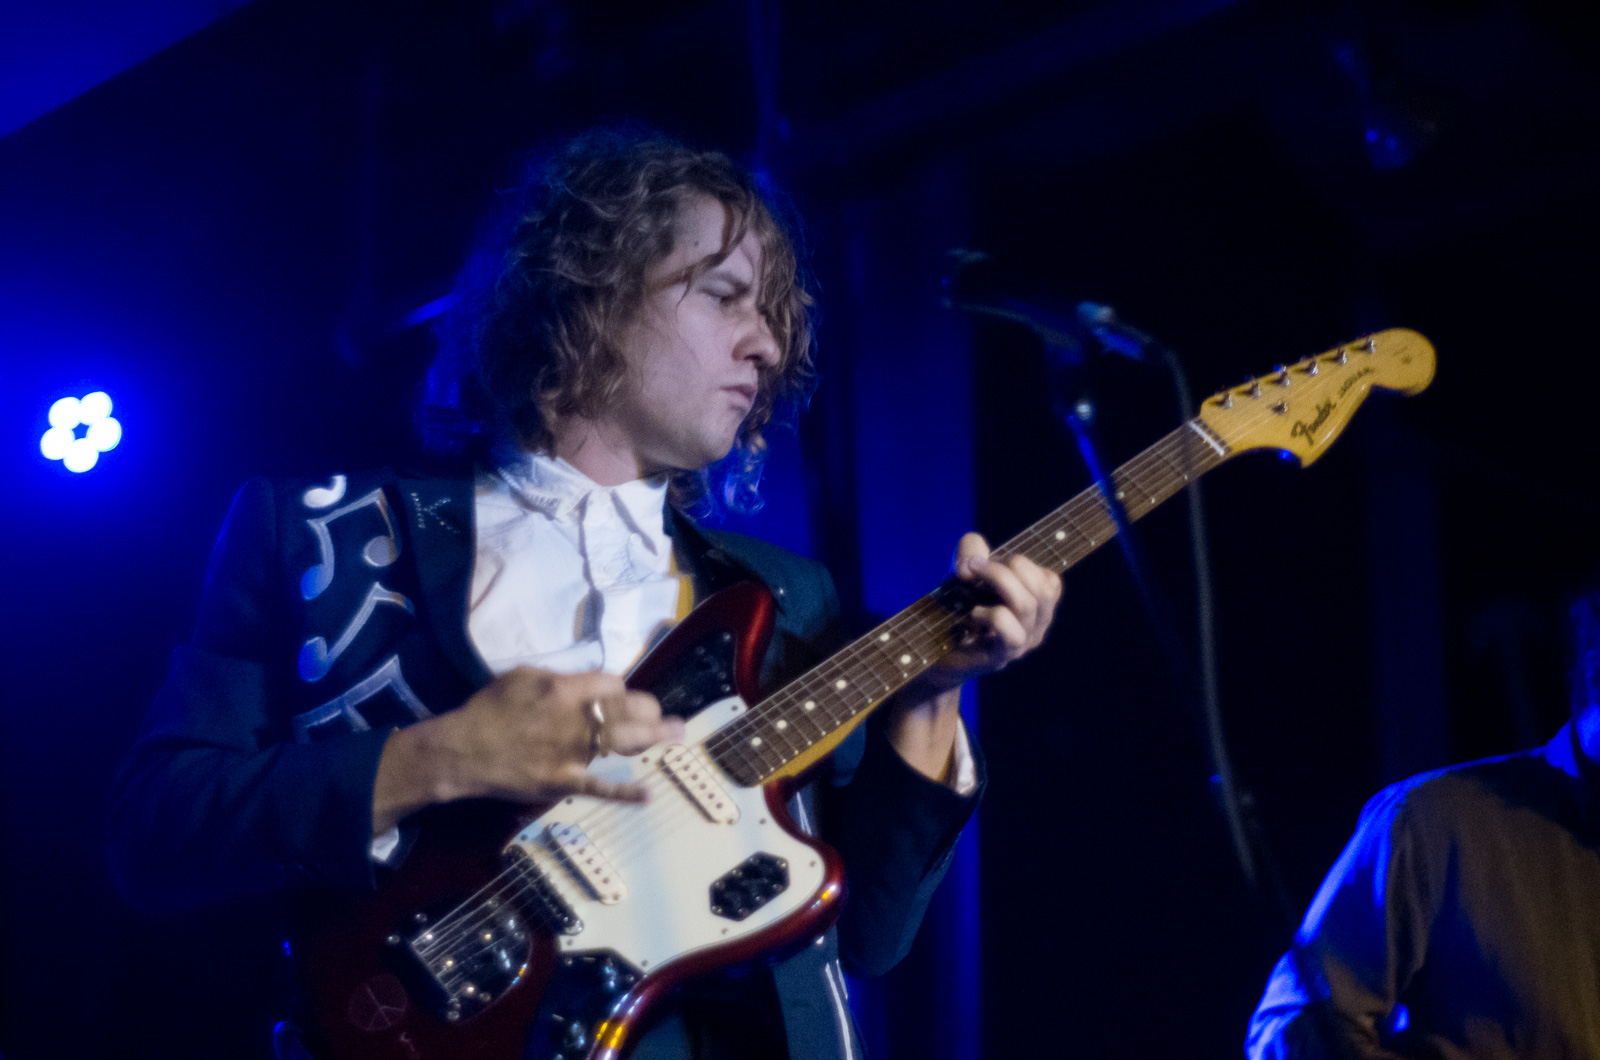 Watch a full live performance by Kevin Morby via KEXP